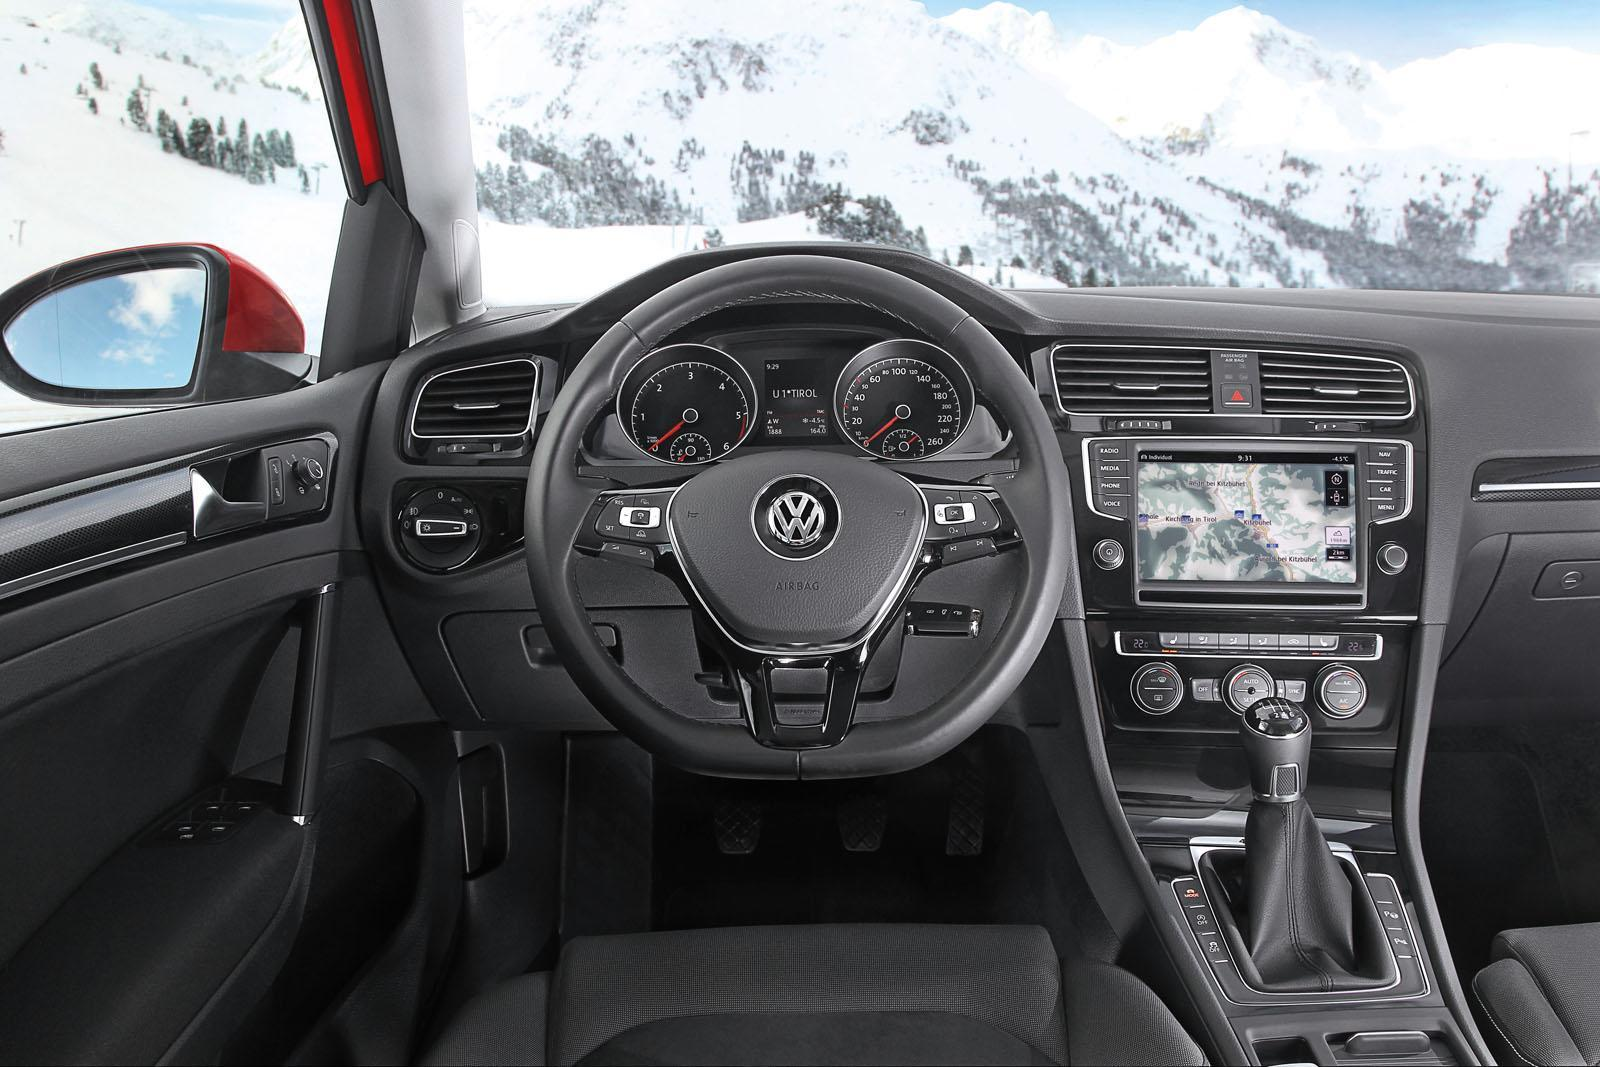 Vw golf 7 4motion 2013 la transmission 4x4 en d tails for Interieur golf 4